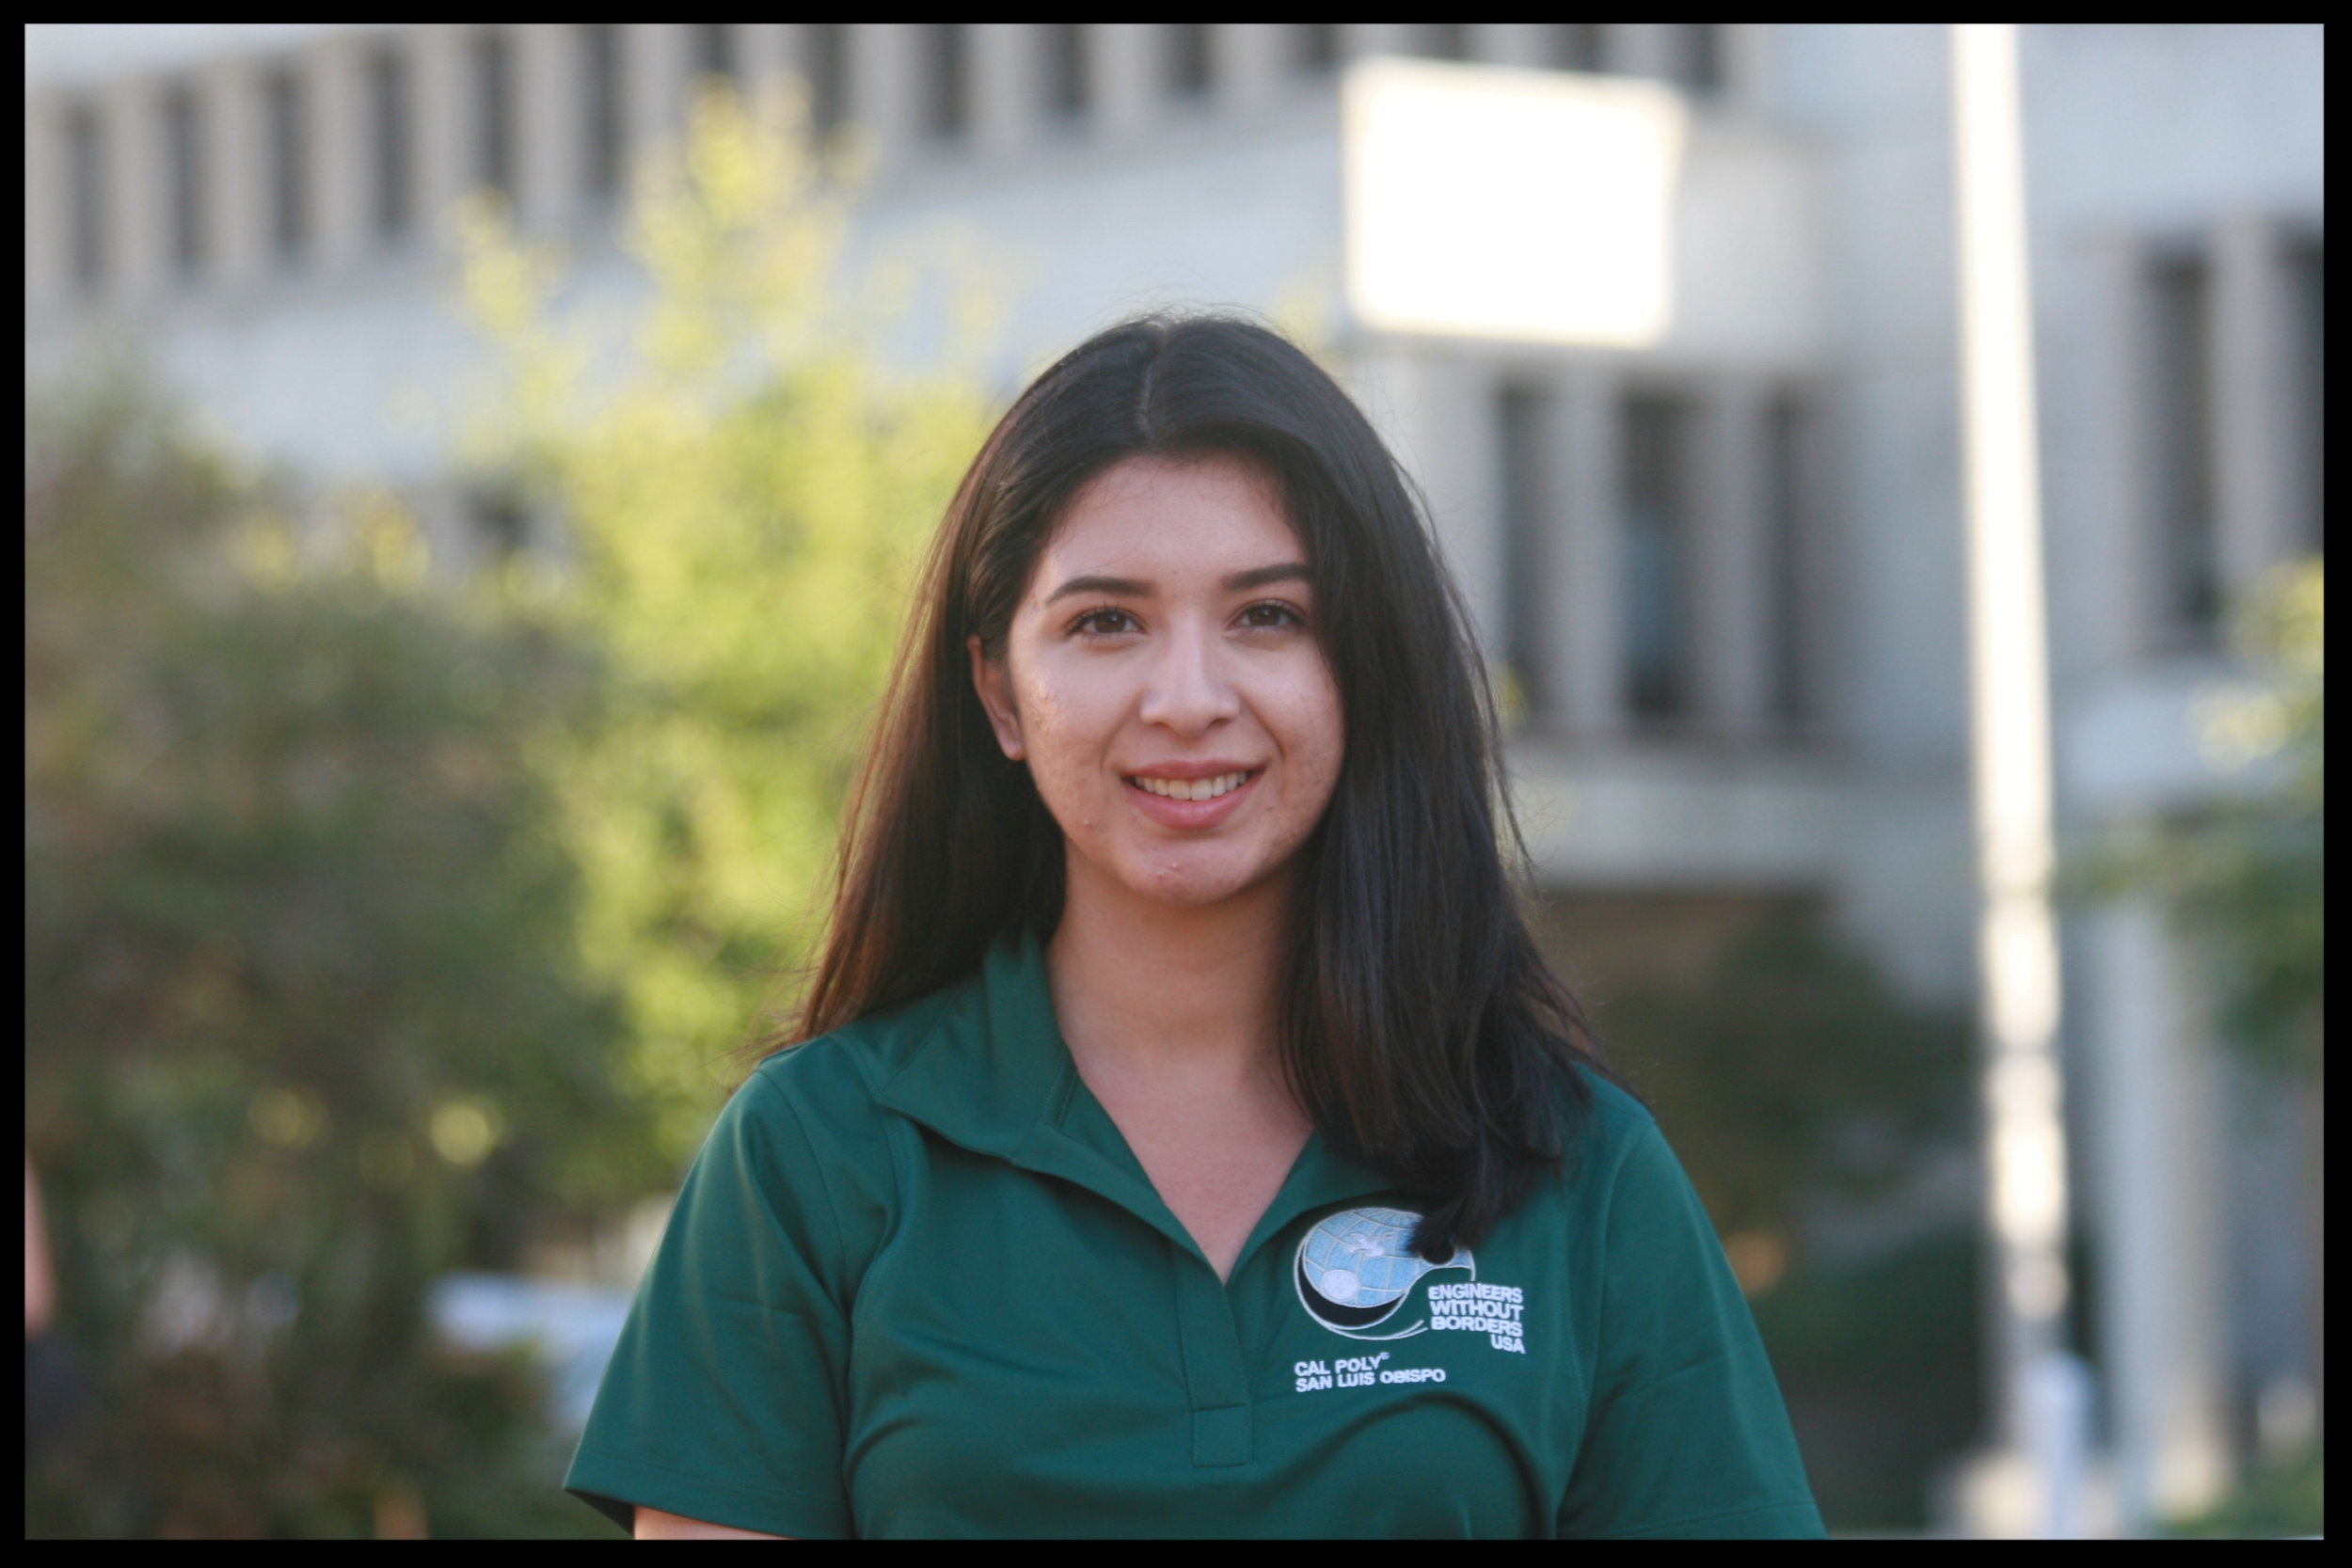 Andrea Leal - Events Coordinator    Grad 2021 - Civil Engineering   Andrea is from San Diego, California. She first became interested in development when she witnessed the difference between the infrastructure and water quality in Tijuana versus that of San Diego, only a few miles away. Andrea joined Cal Poly's EWB to work with communities to attain the quality of life they deserve regardless of their geographic boundaries. Andrea is currently in the Nicaragua team as the Education lead, and her favorite part of EWB is working alongside some of the most passionate, humble, and hard-working people in Cal Poly.